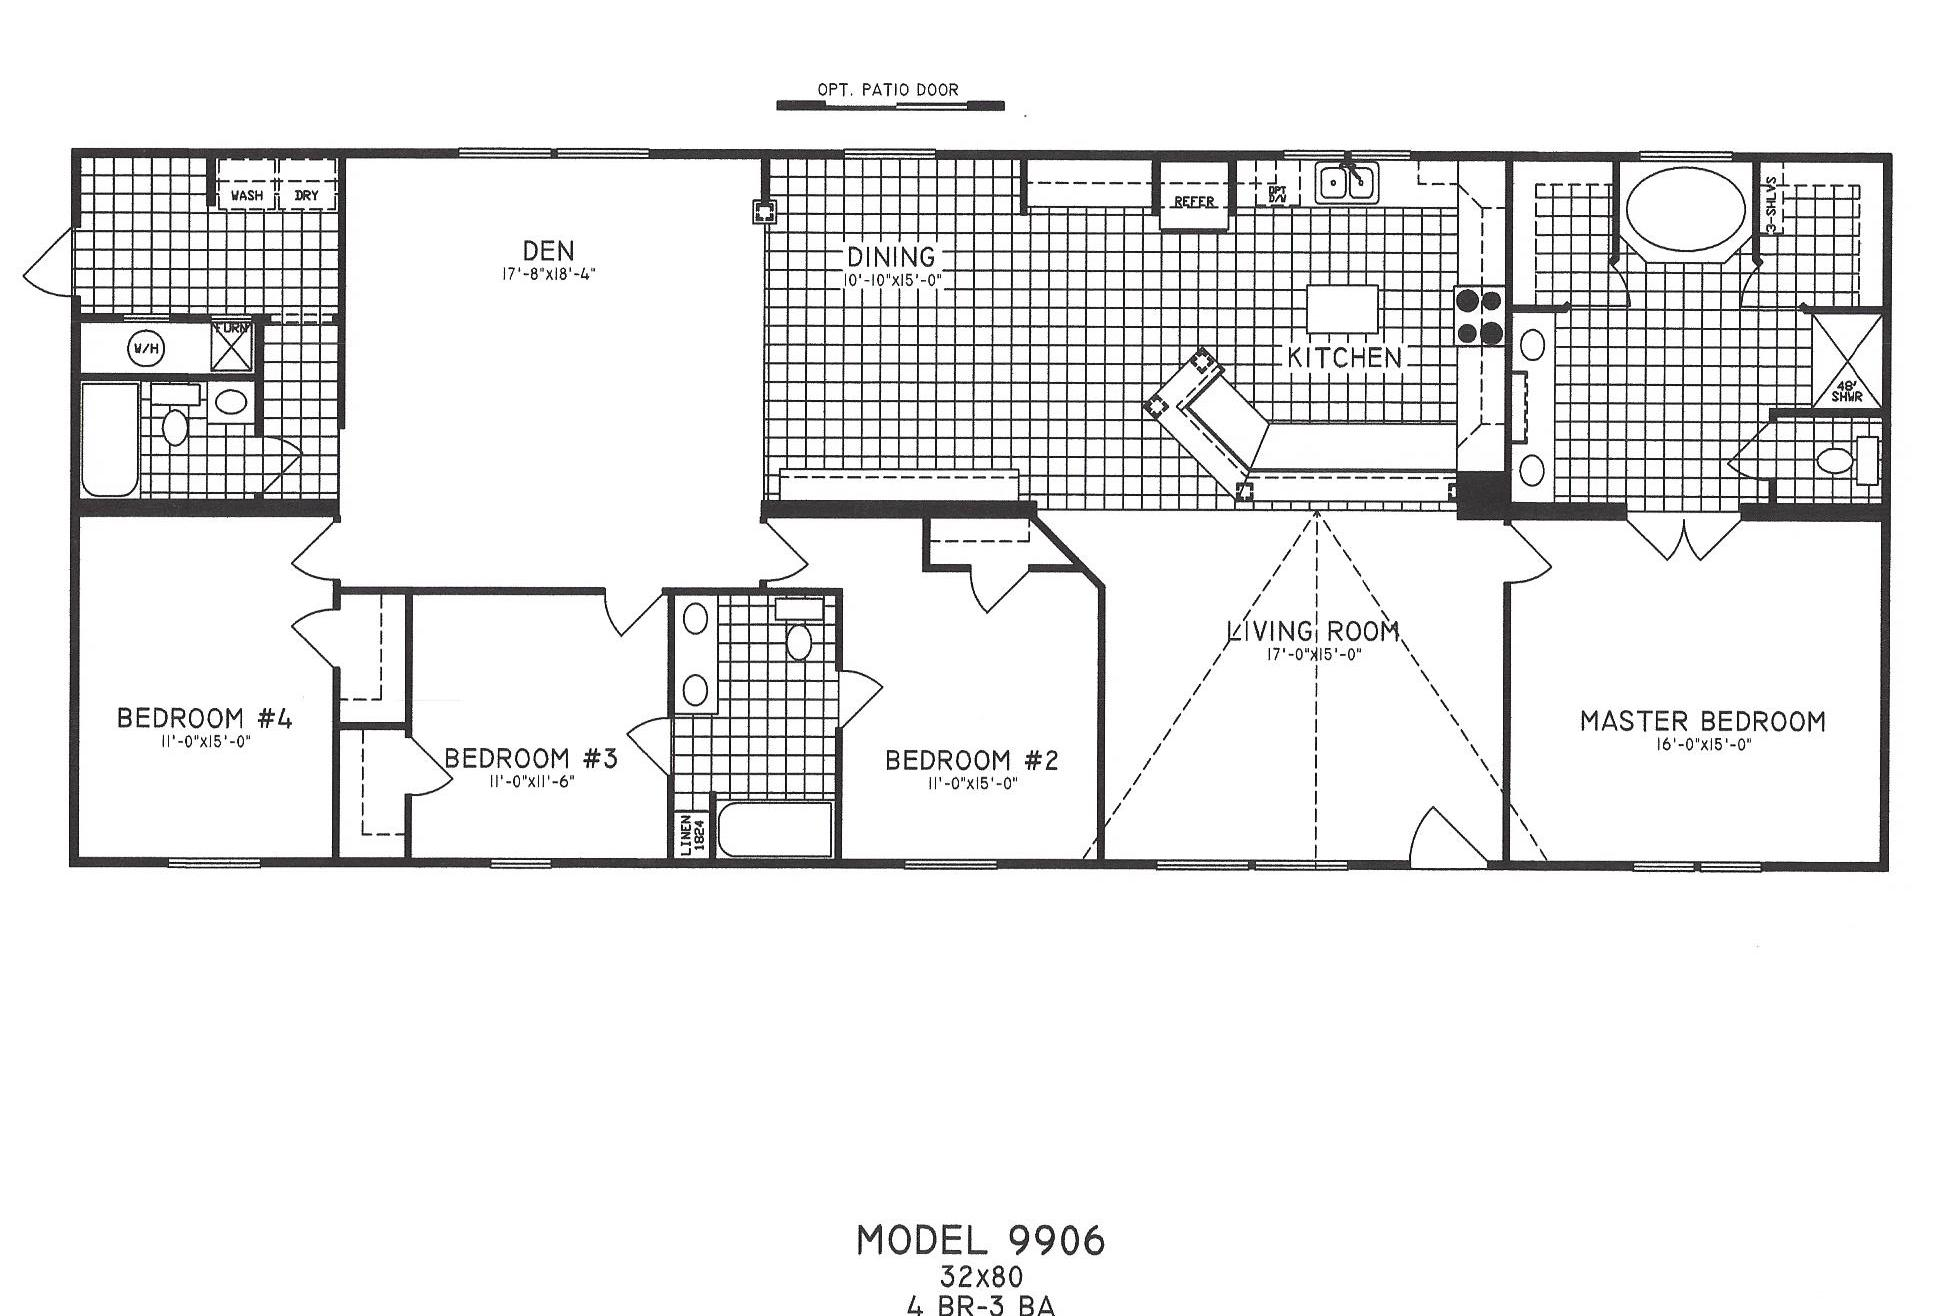 new plan with jack and jill 3rd bath large living room and den great setup and great price - Large Living Room House Plans